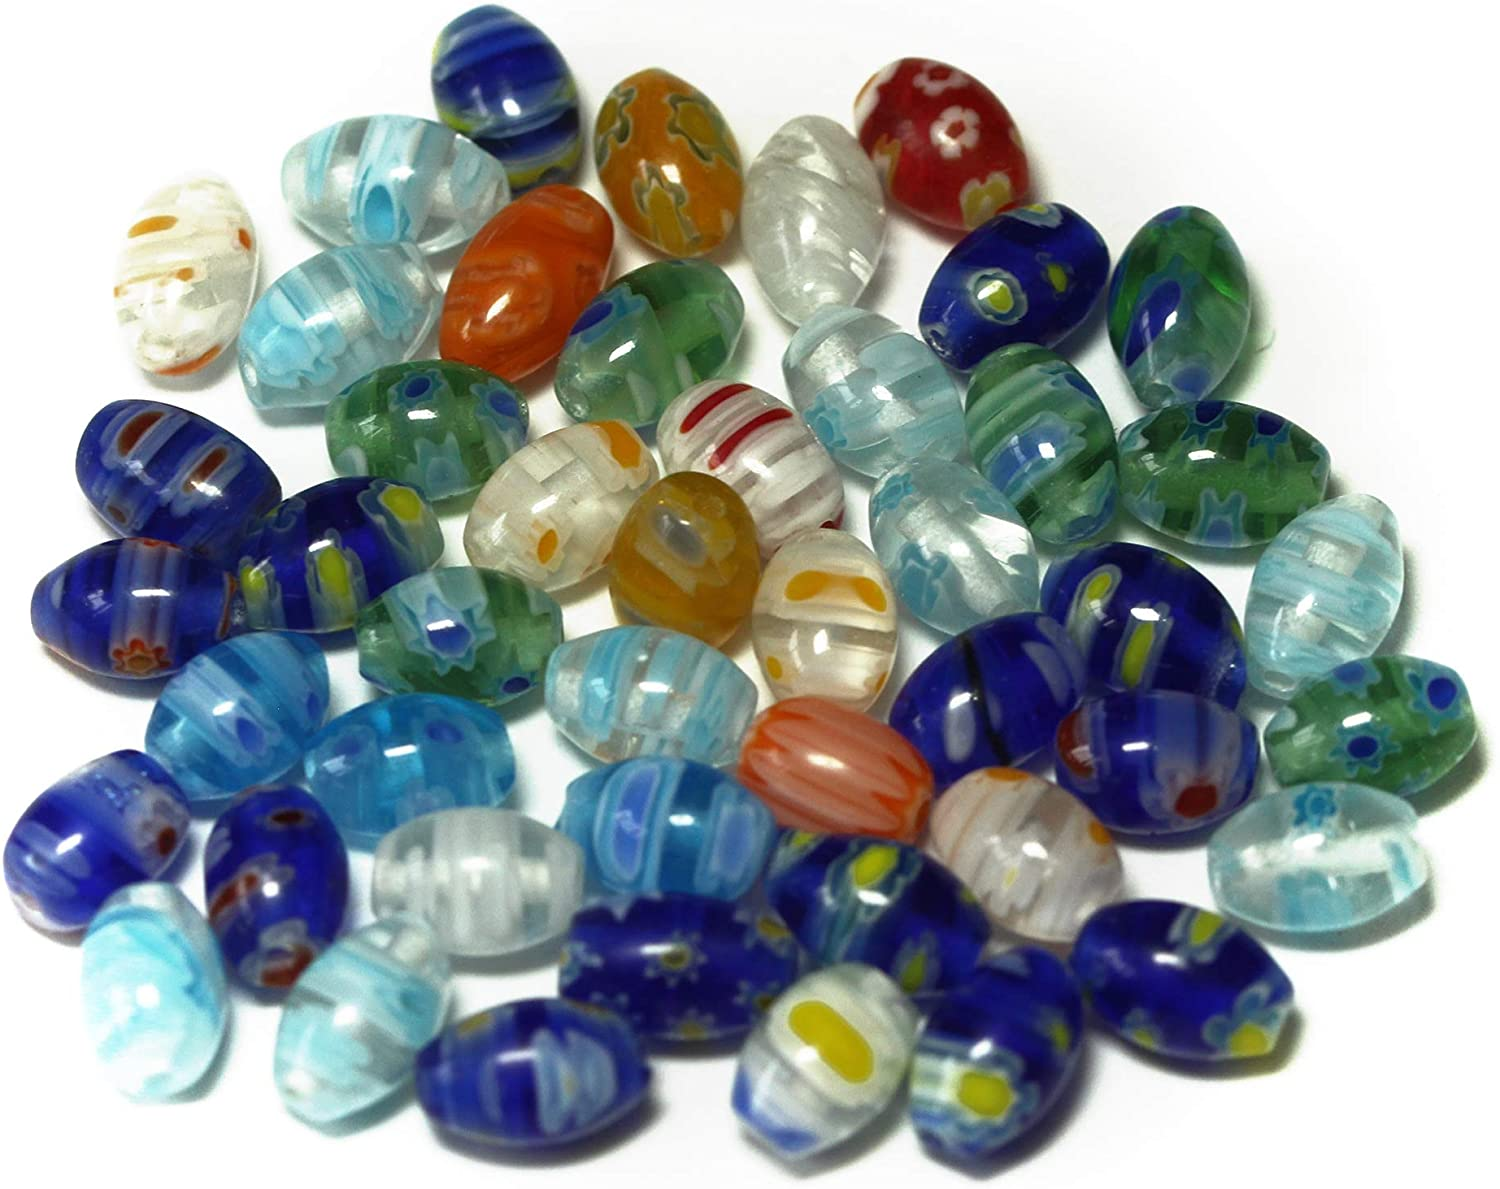 ALLinONE Millefiori Lampwork Glass Beads for DIY Necklace Bracelet Jewelry Making (6x8mm Oval)